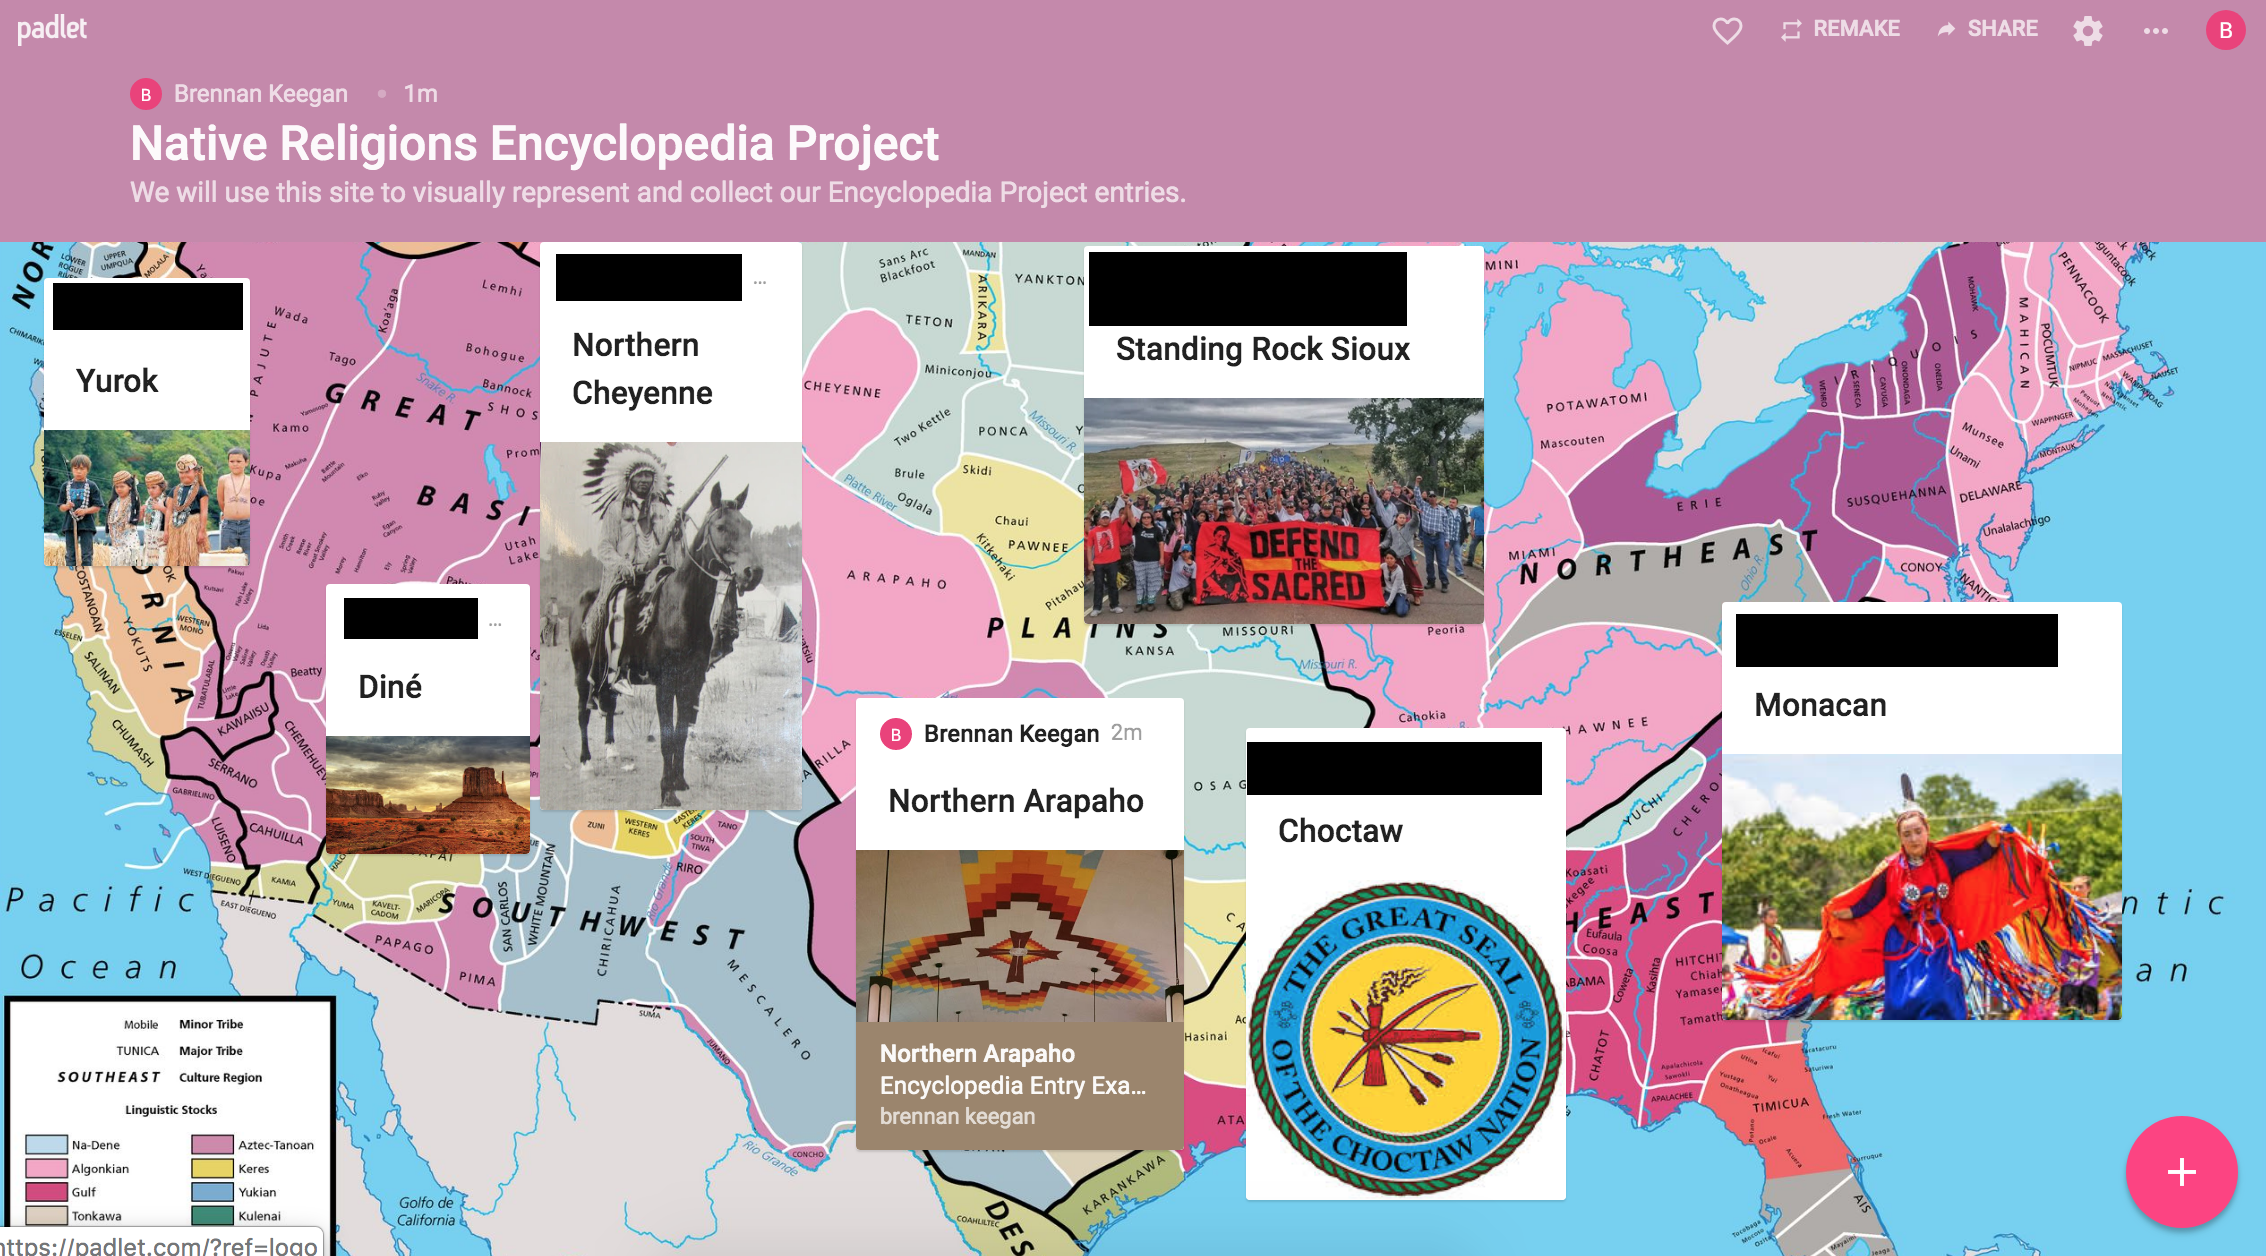 Clickable images connect all student work to a central Padlet homepage